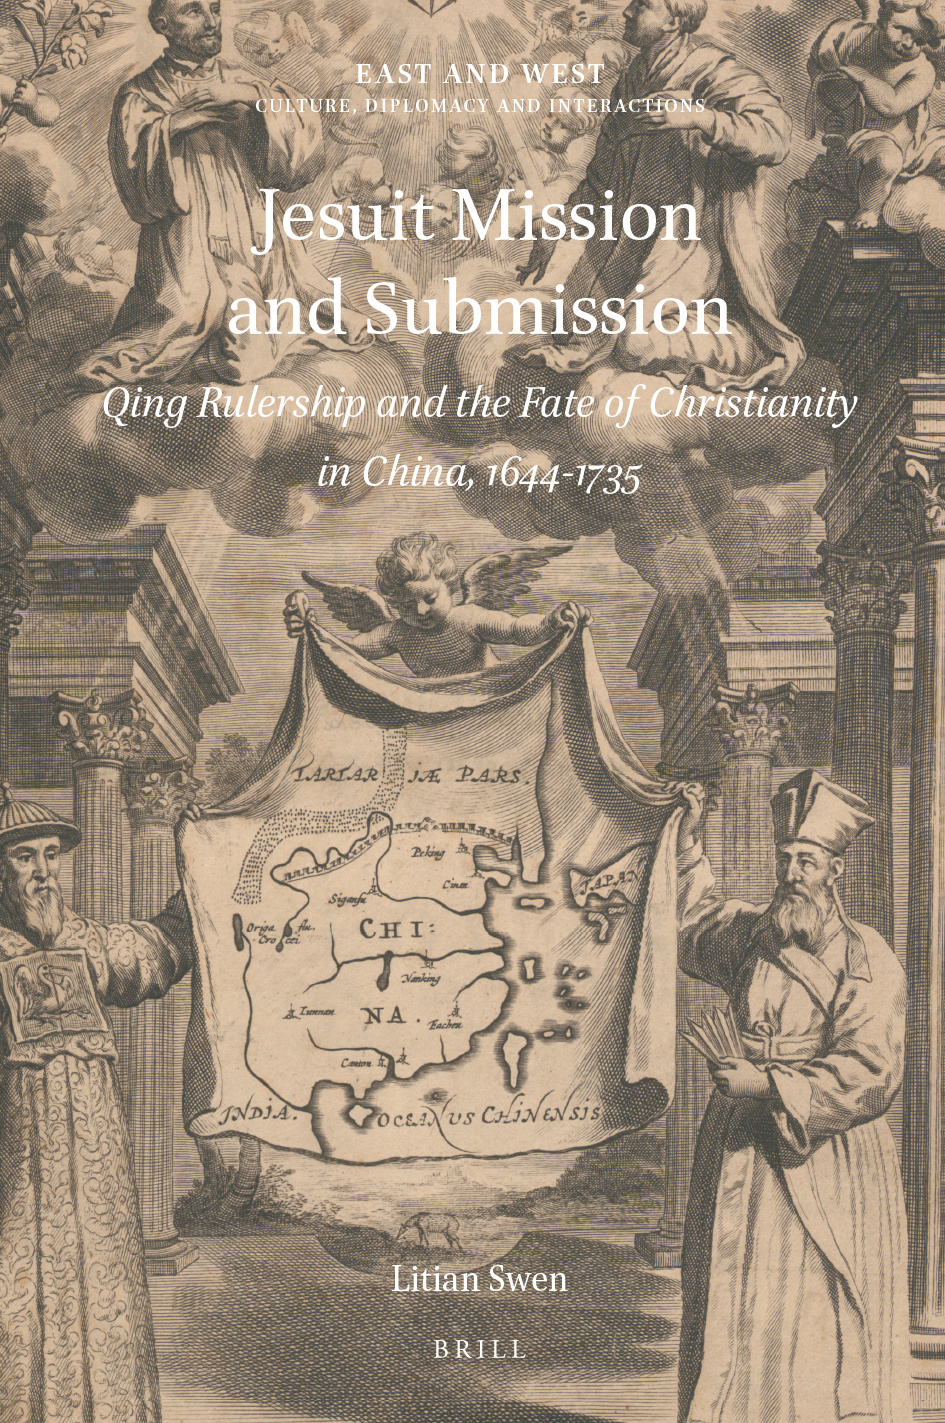 Litian Swen, Jesuit mission and submission: Qing rulership and the fate of Christianity in China, 1644-1735 (2021)